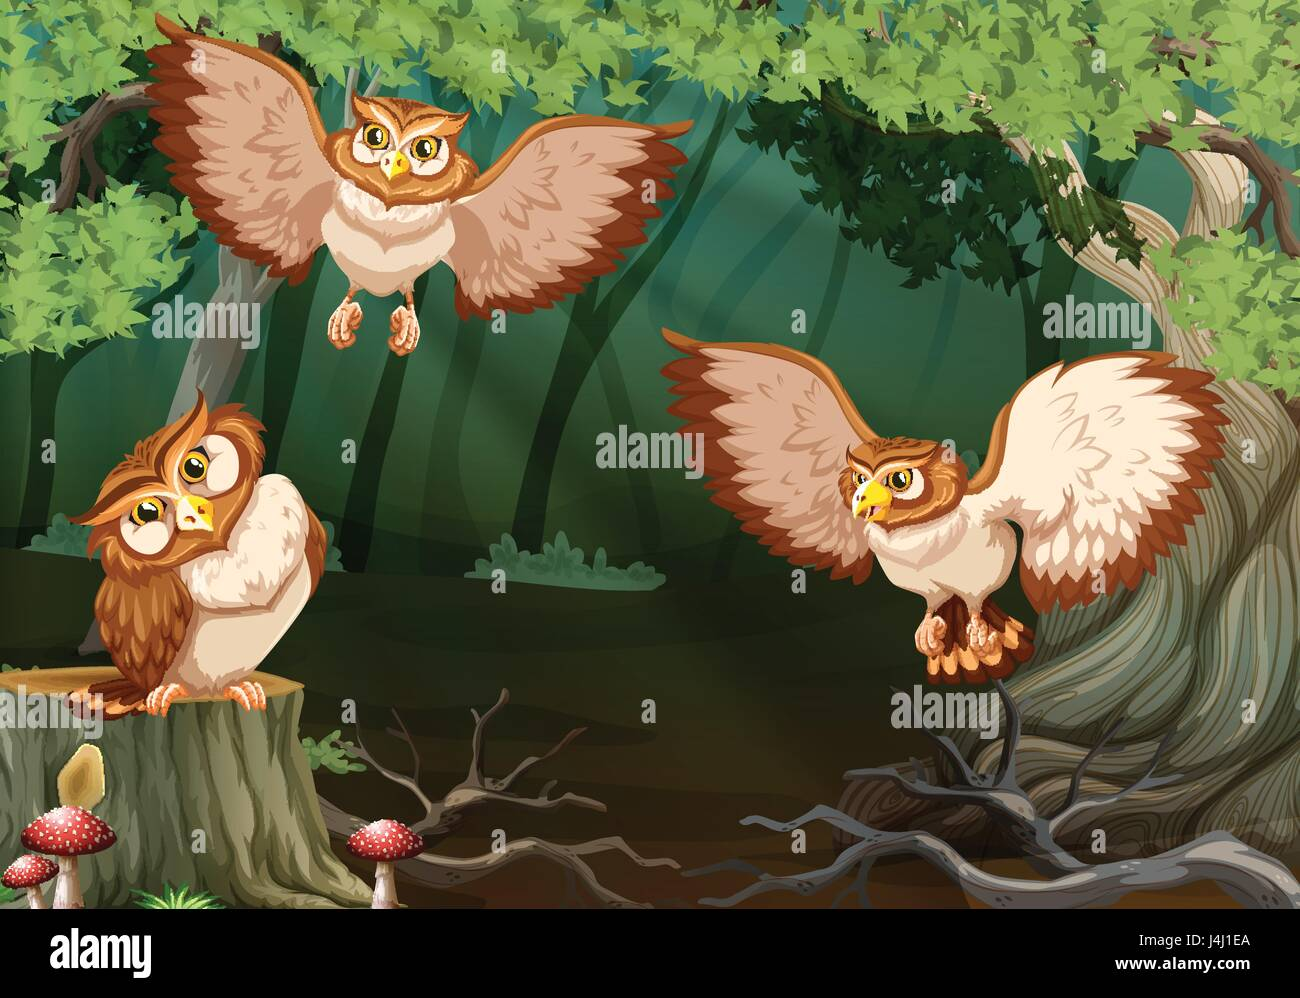 Three owls flying in forest illustration - Stock Vector